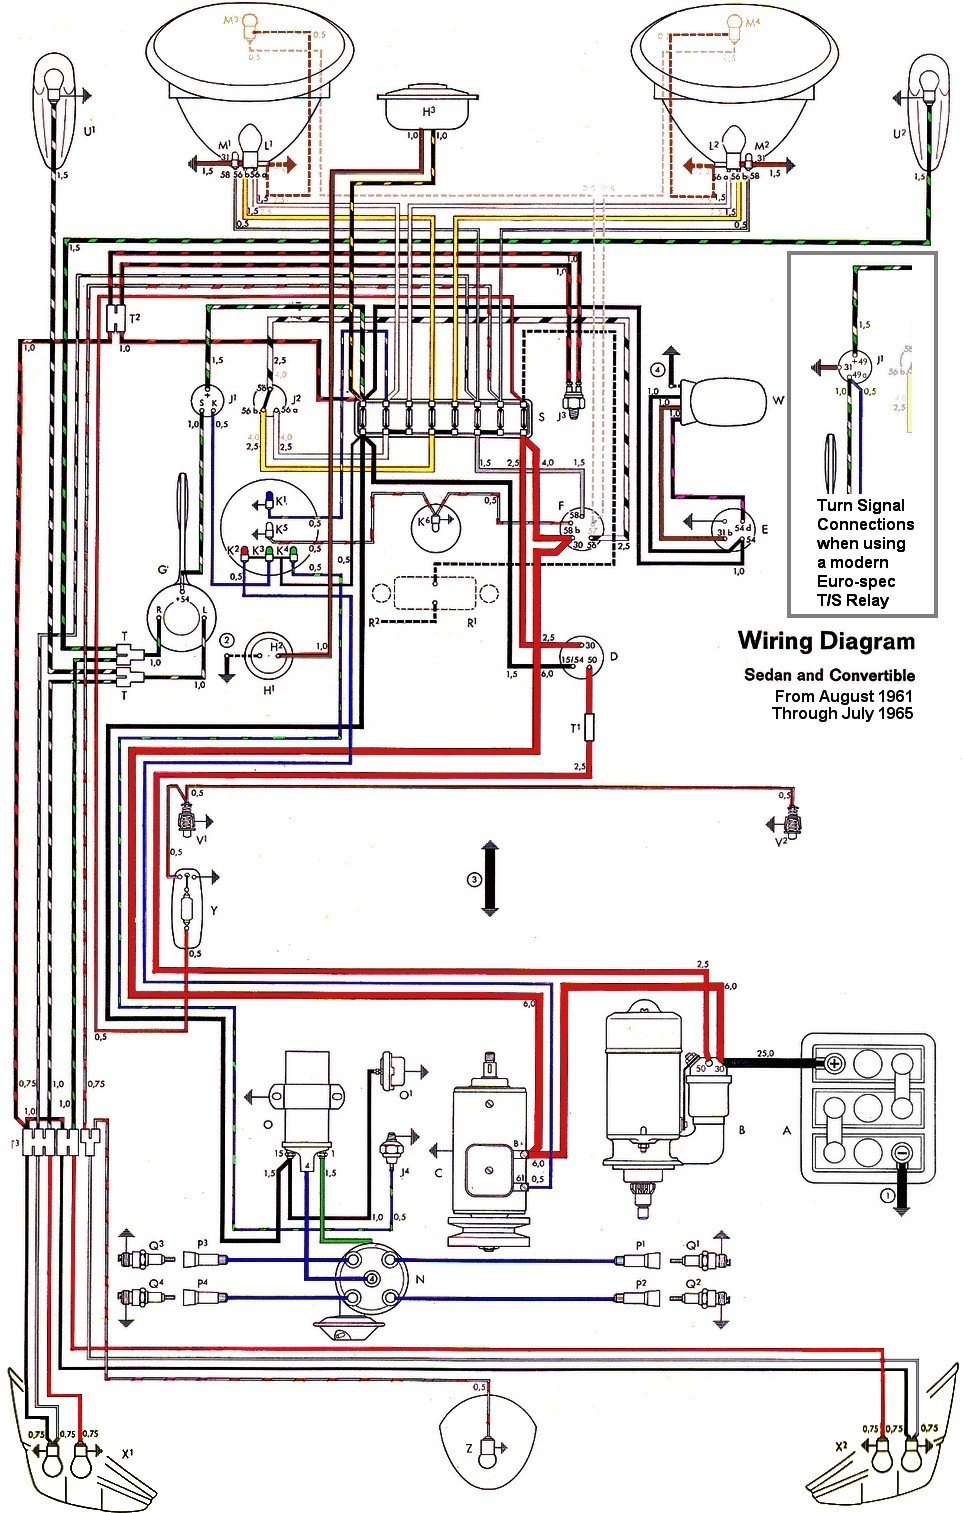 bug_62 65withinset wiring diagram vw beetle sedan and convertible 1961 1965 vw 1971 vw bus wiring diagram at mr168.co